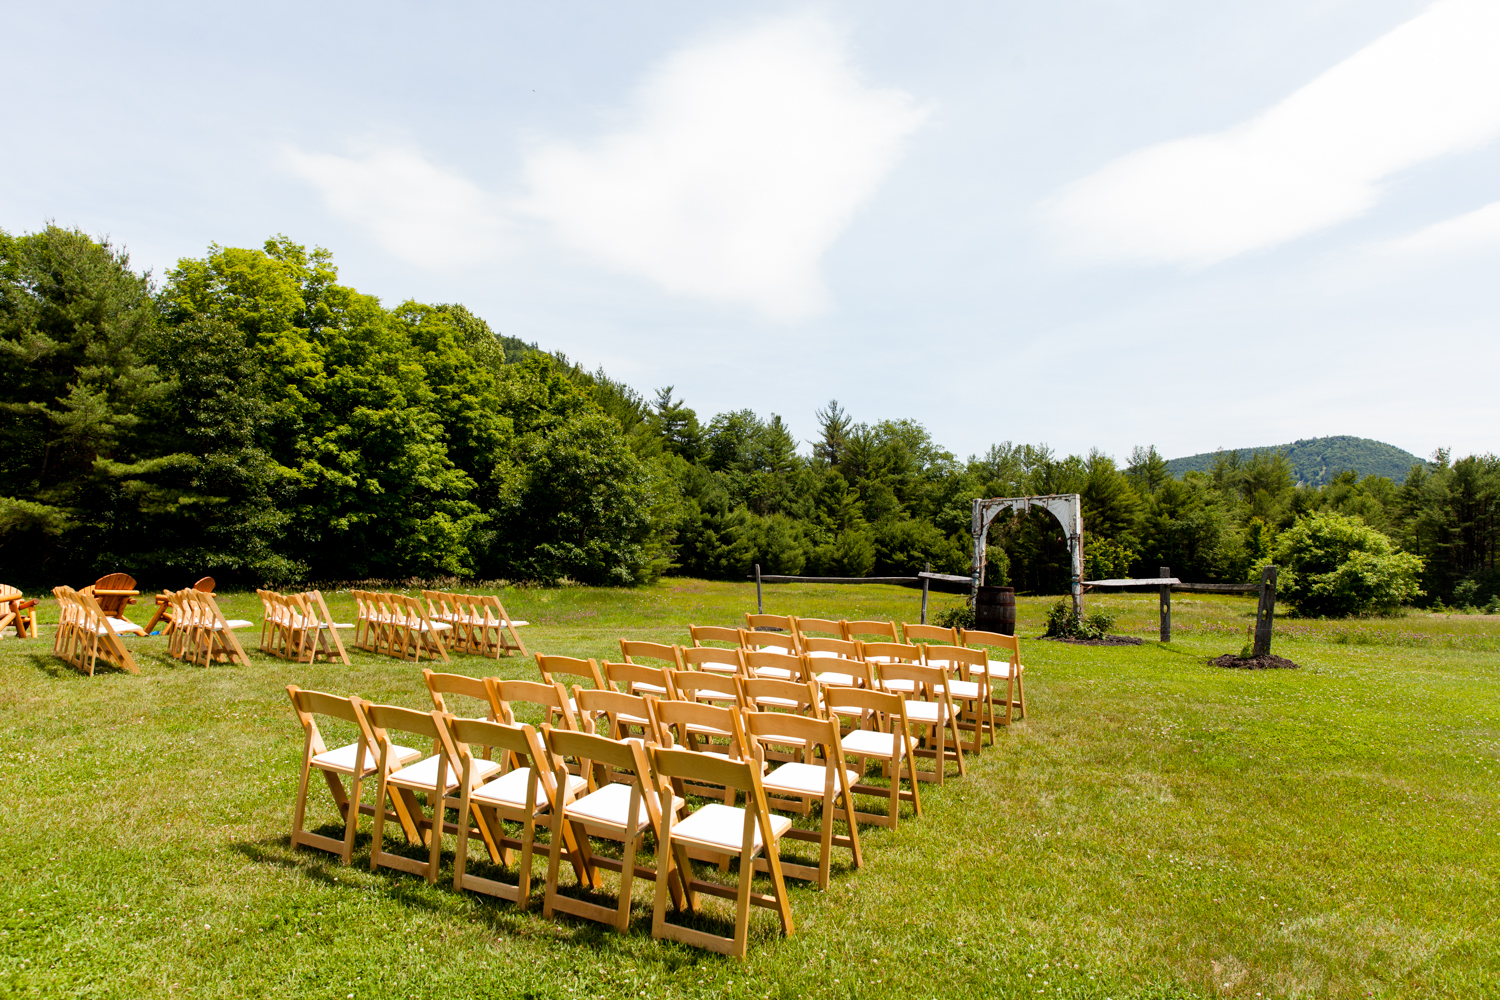 View of an Adirondacks ceremony site in upstate, NY